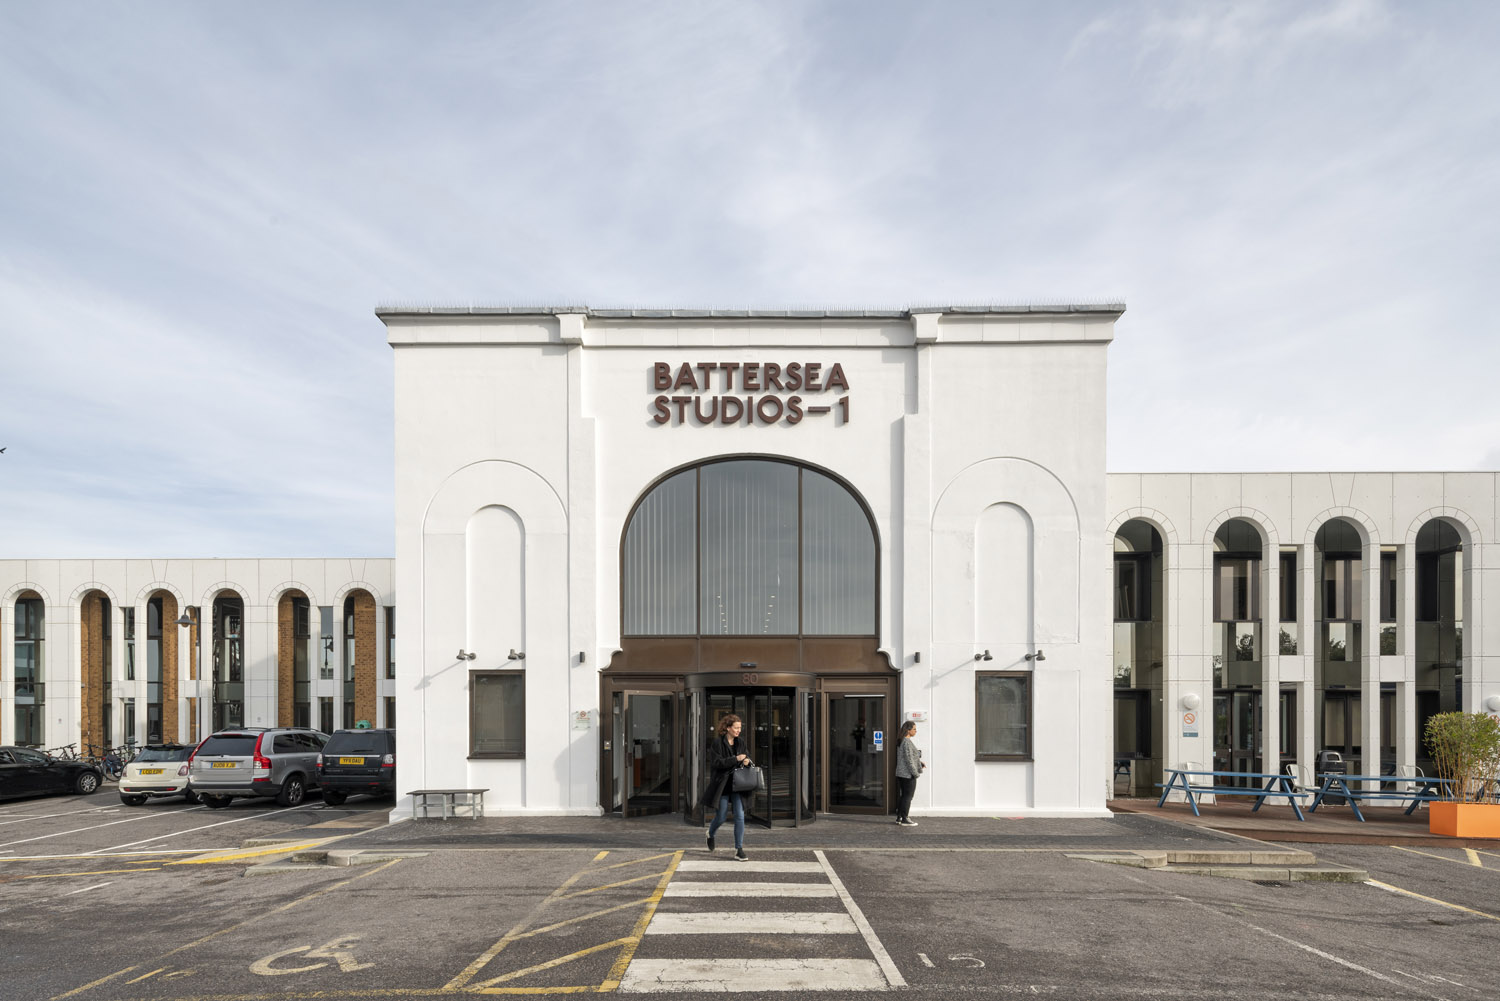 Battersea Studios, London, SW8 3HE - Photo by Joas Souza